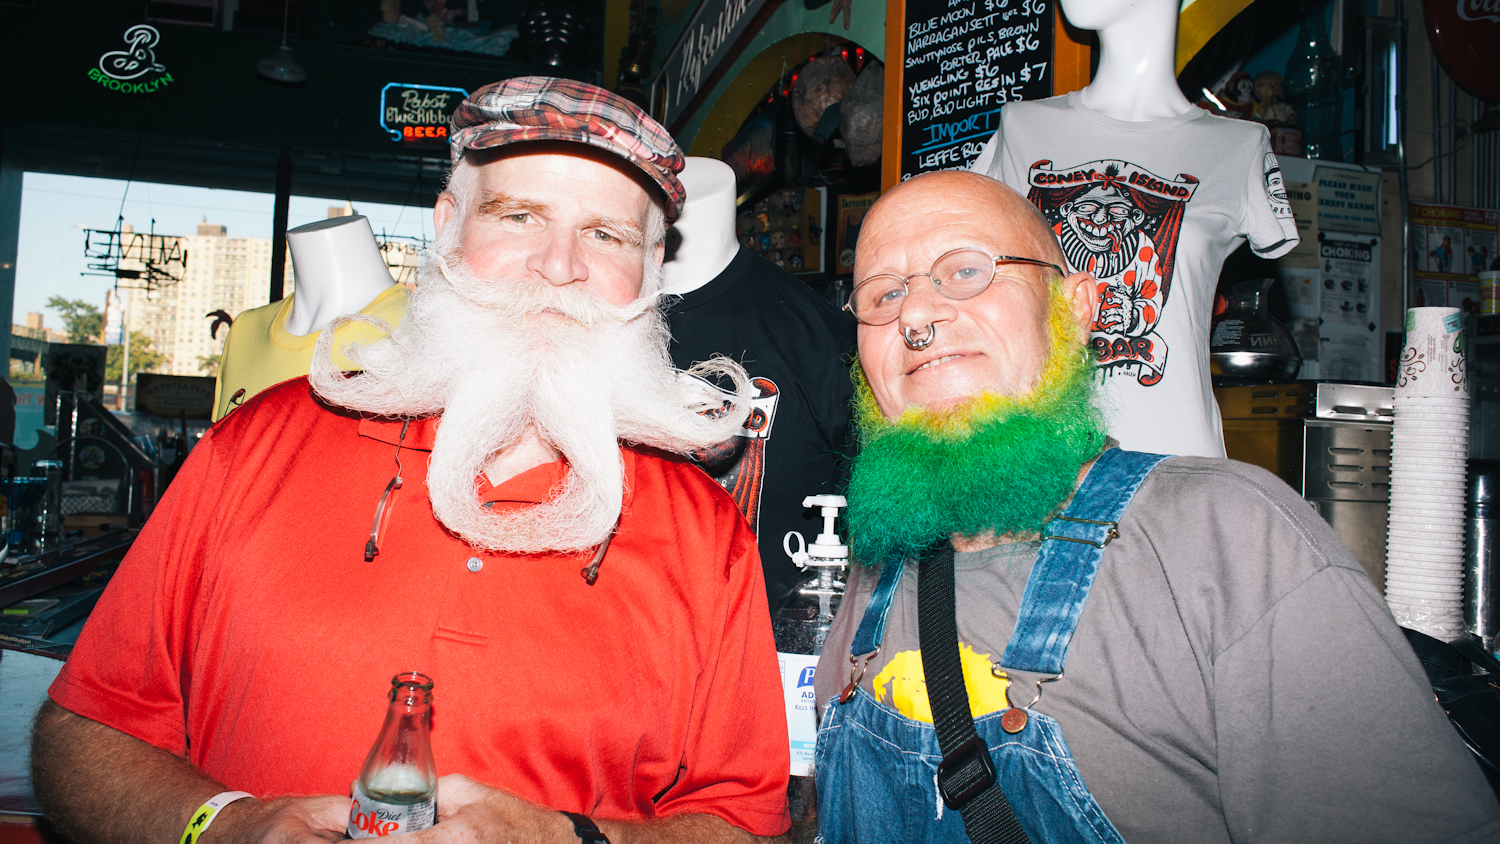 See the hairy photos from the 2015 Coney Island Beard and Mustache Competition